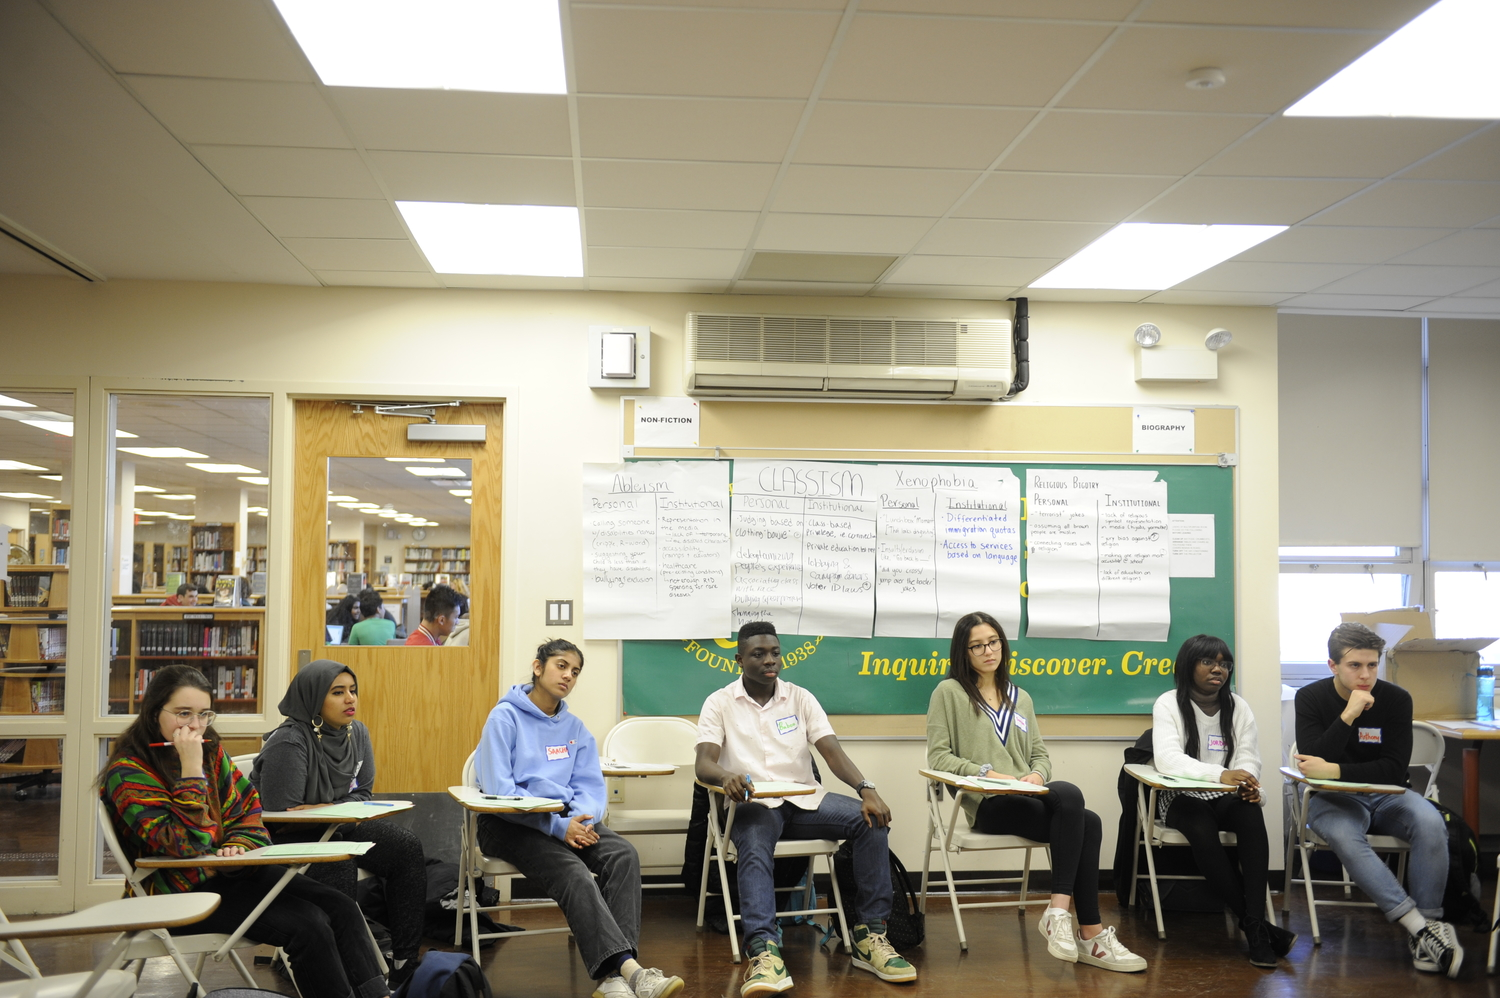 Students reconvene to share what they spoke about in small groups during an ADL meeting.